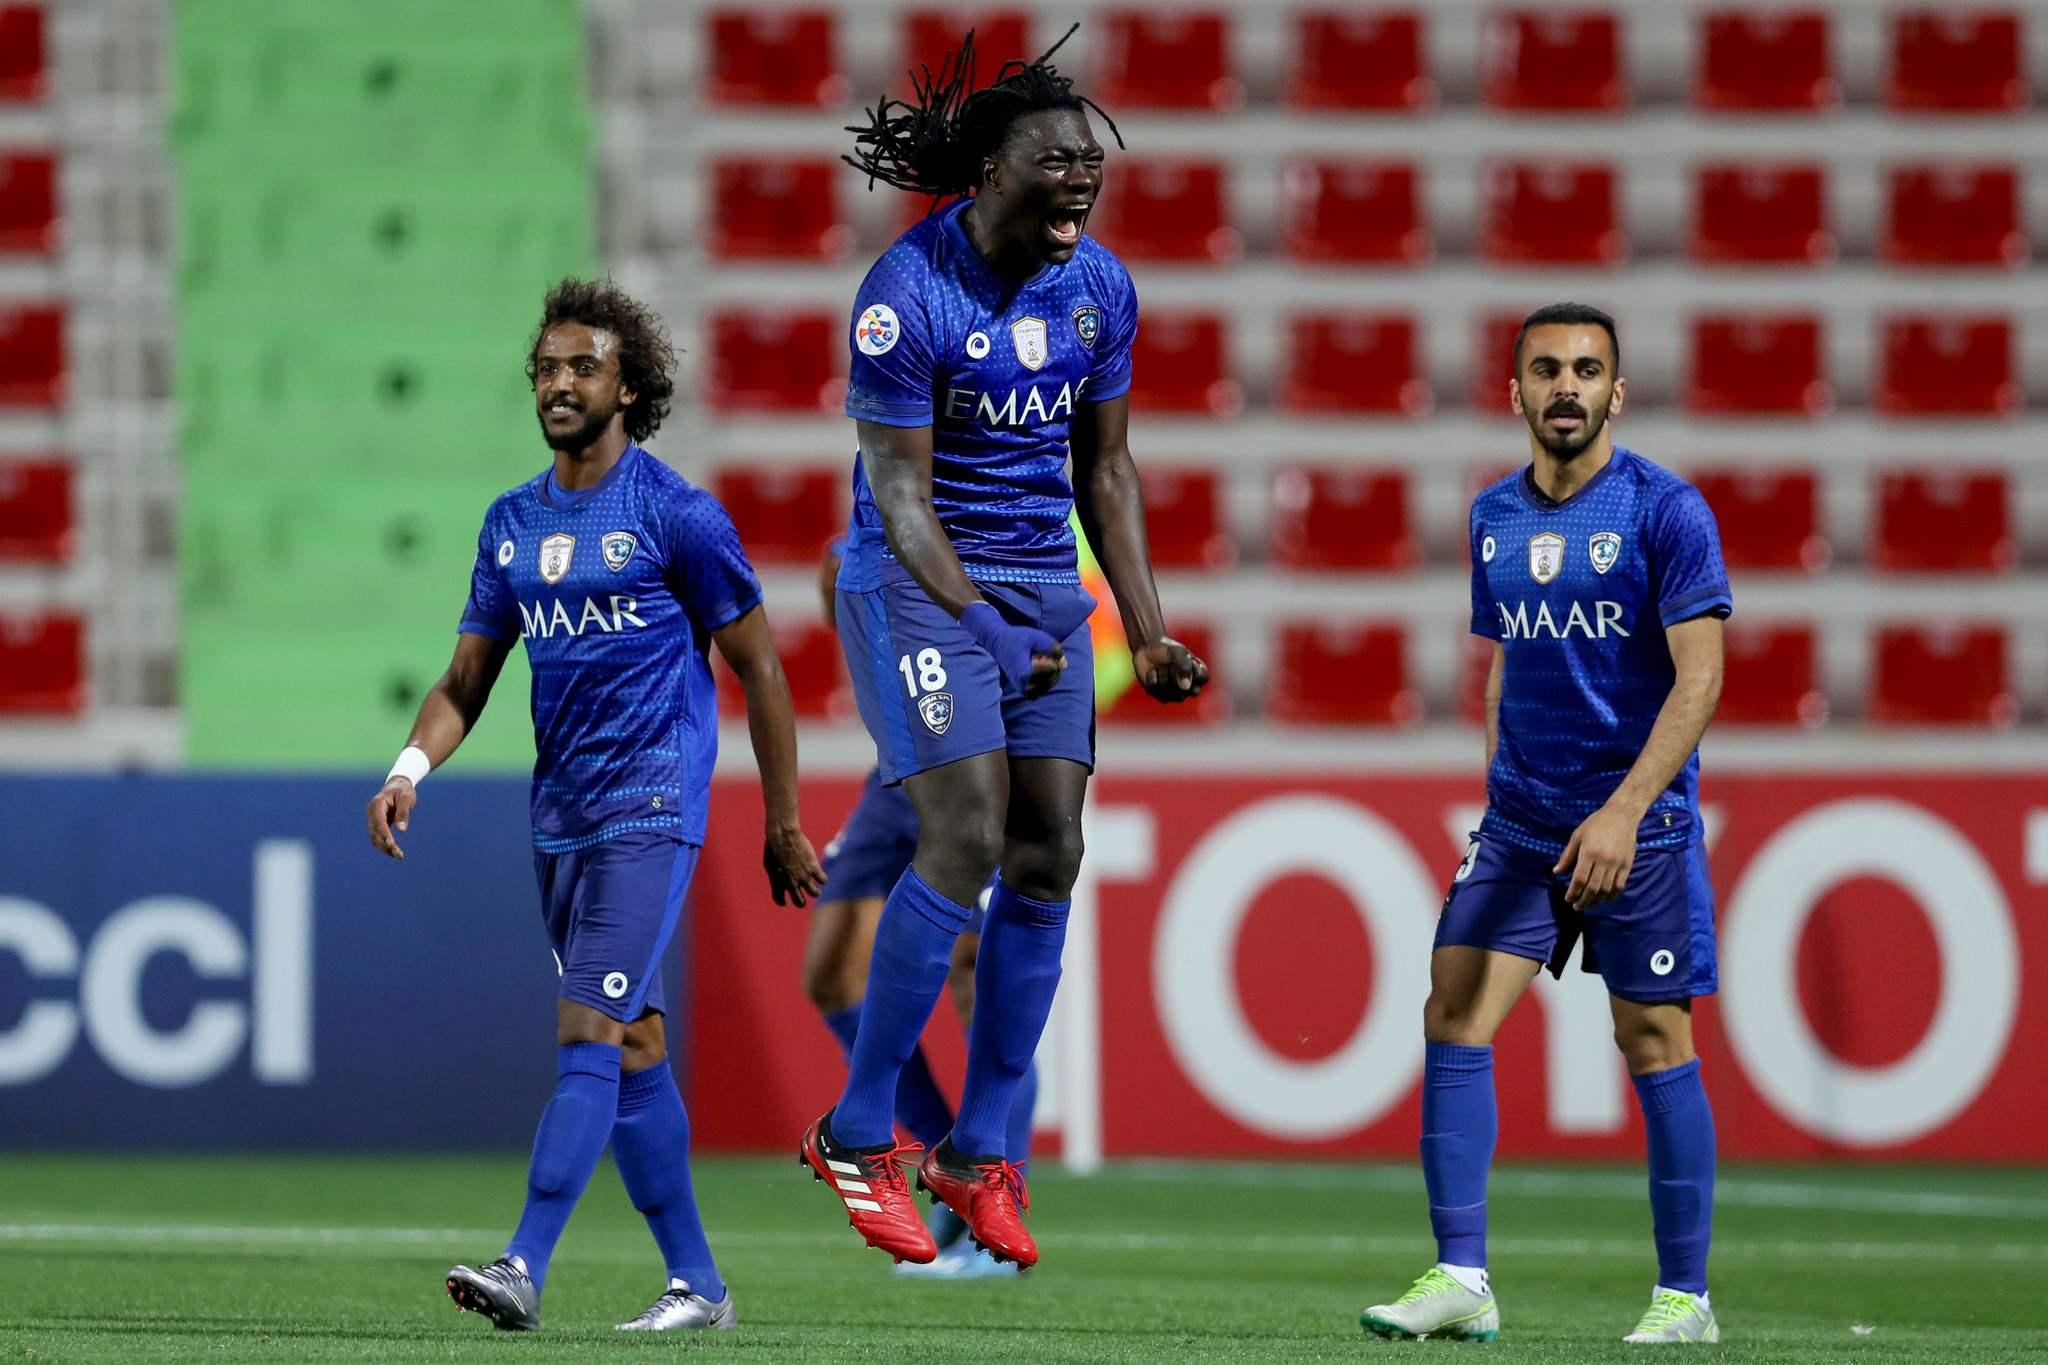 Hilals forward Bafetimbi lt;HIT gt;Gomis lt;/HIT gt; (C) celebrates his goal with teammates during the AFC Champions League group B football match between UAEs Shabab al-Ahli and Saudis al-Hilal at the Rashid Stadium in Dubai on February 17, 2020. (Photo by - / AFP)